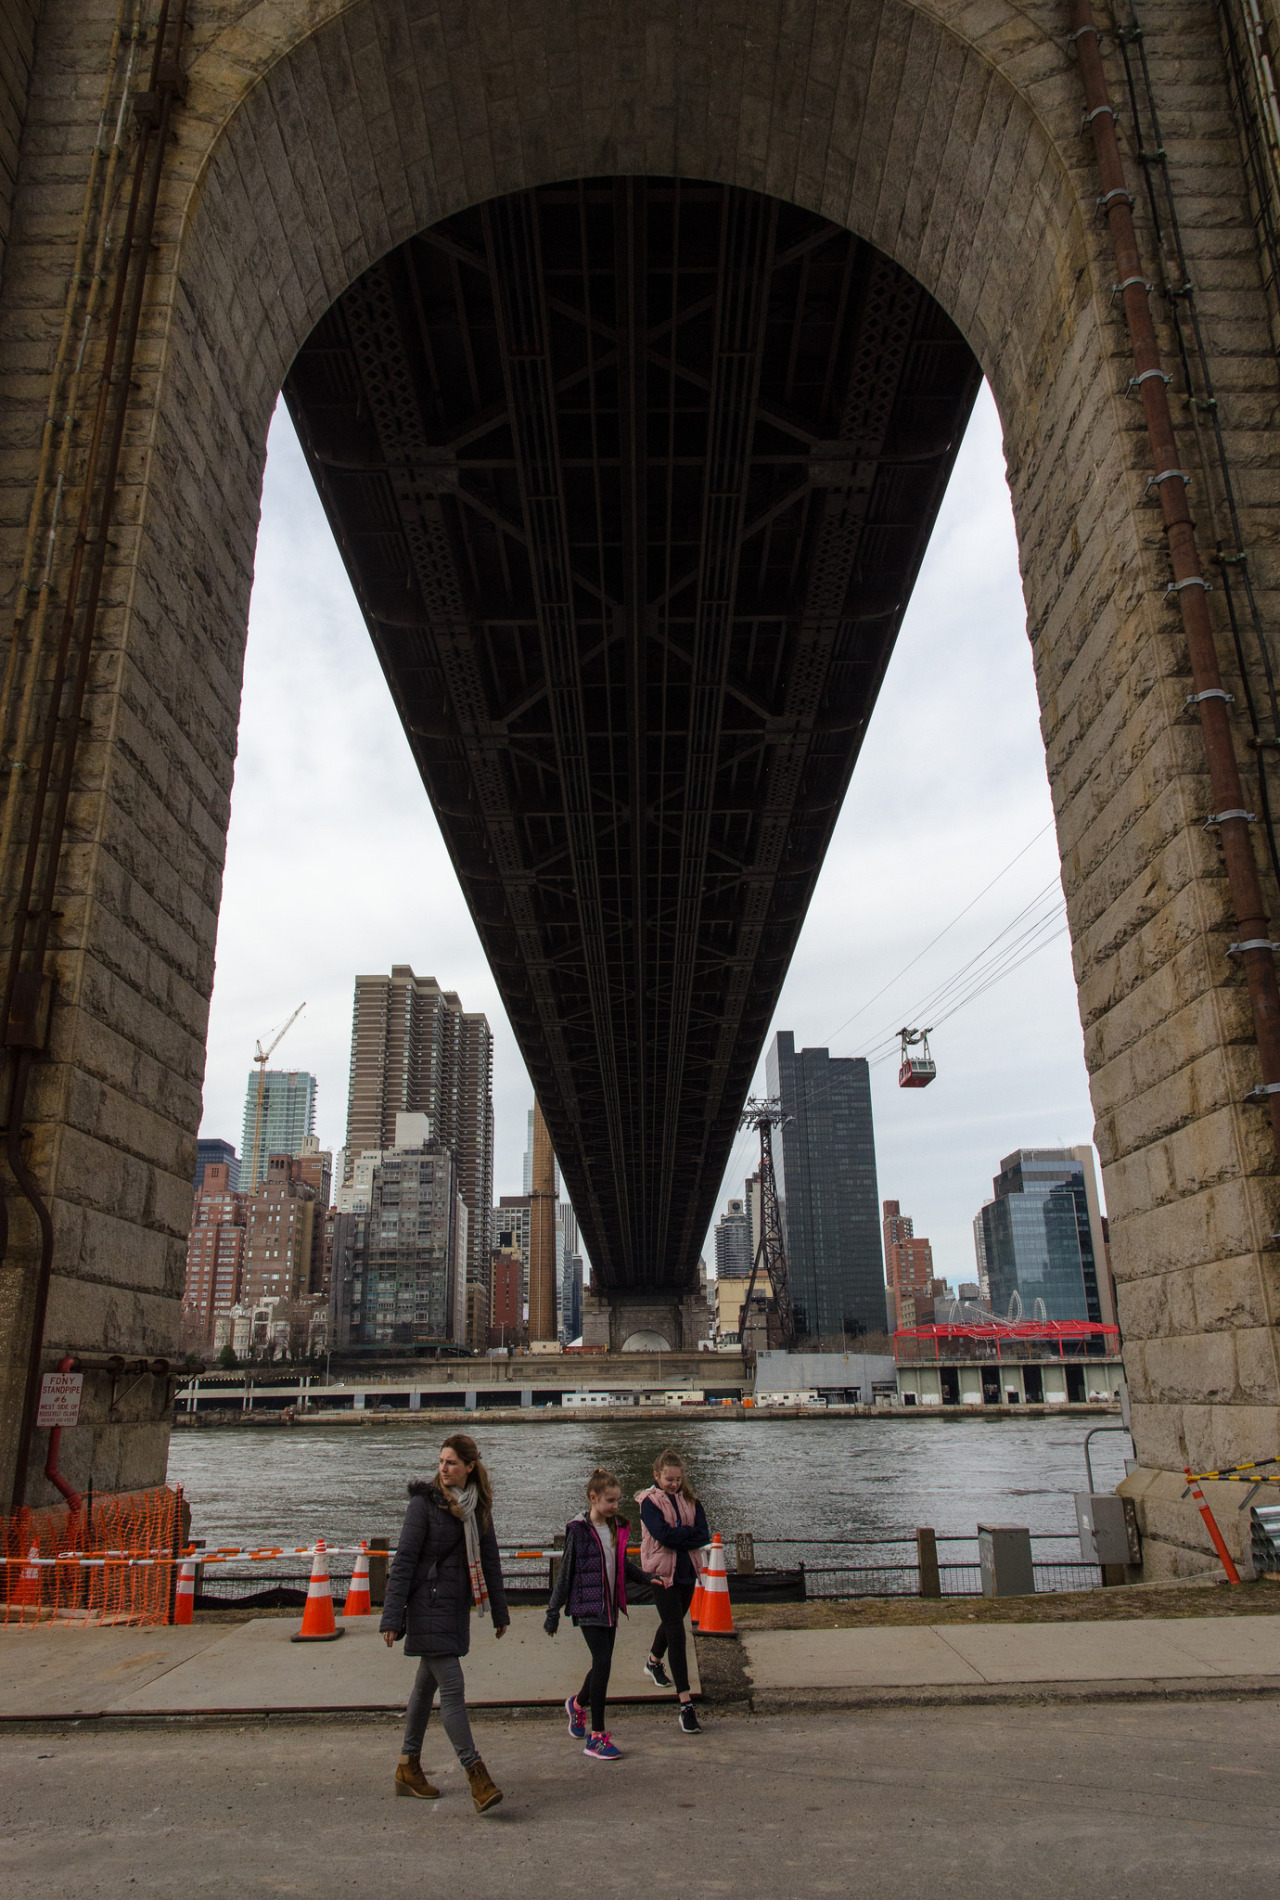 Under the Queensboro Bridge, NYC.